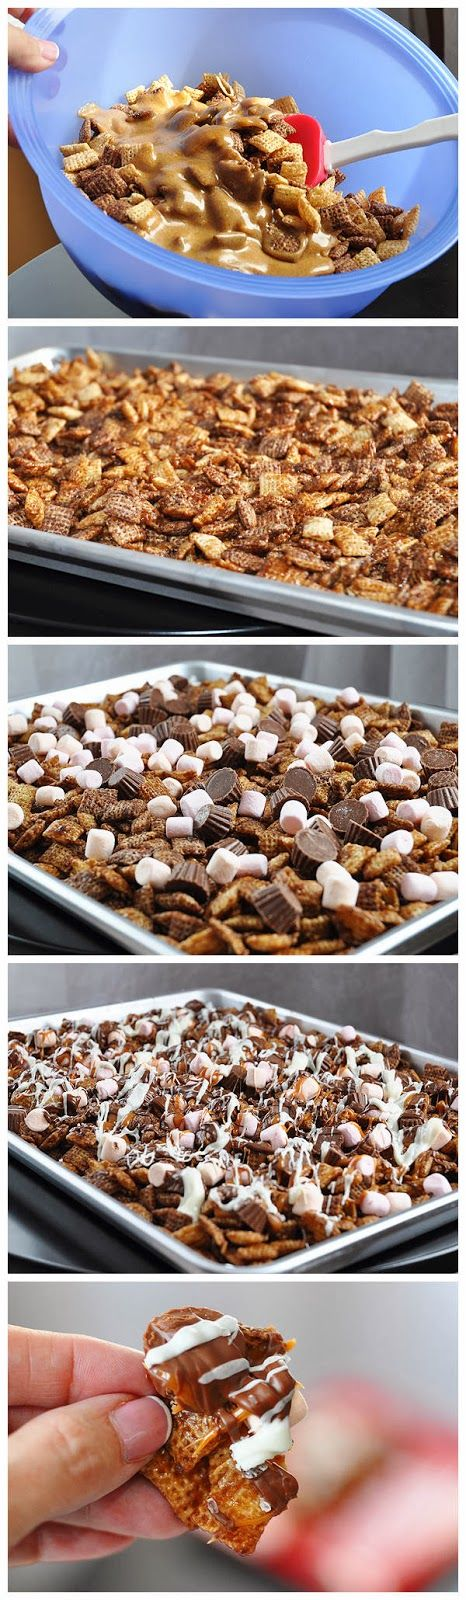 Better than Sex Chex Mix. Chocolate-smothered caramel, peanut butter candies, sweet marshmallows and crunchy chocolate Chex cereal